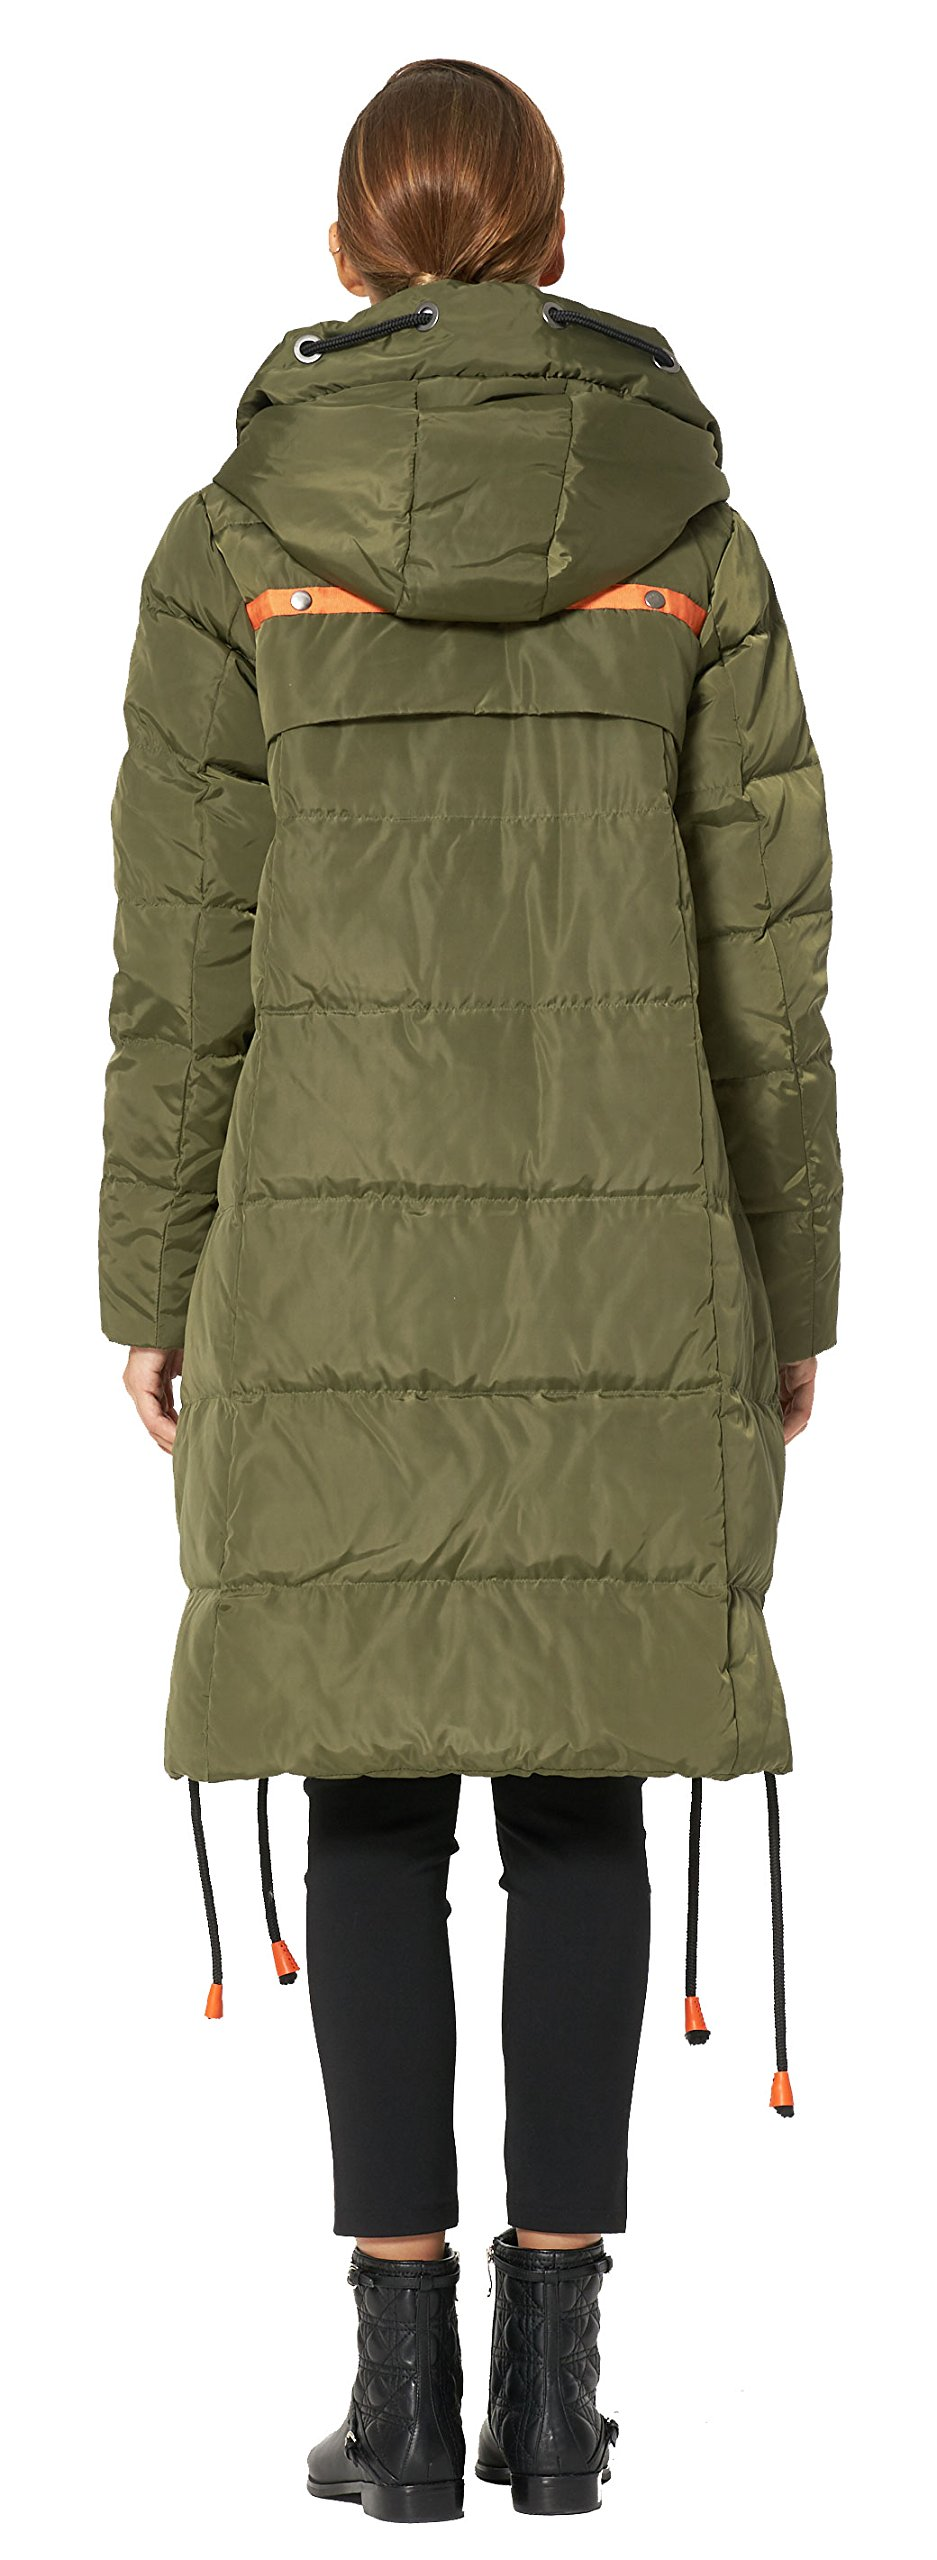 Orolay Women's Thickened Contrast Color Drawstring Down Jacket Hooded ArmyGreen S by Orolay (Image #2)